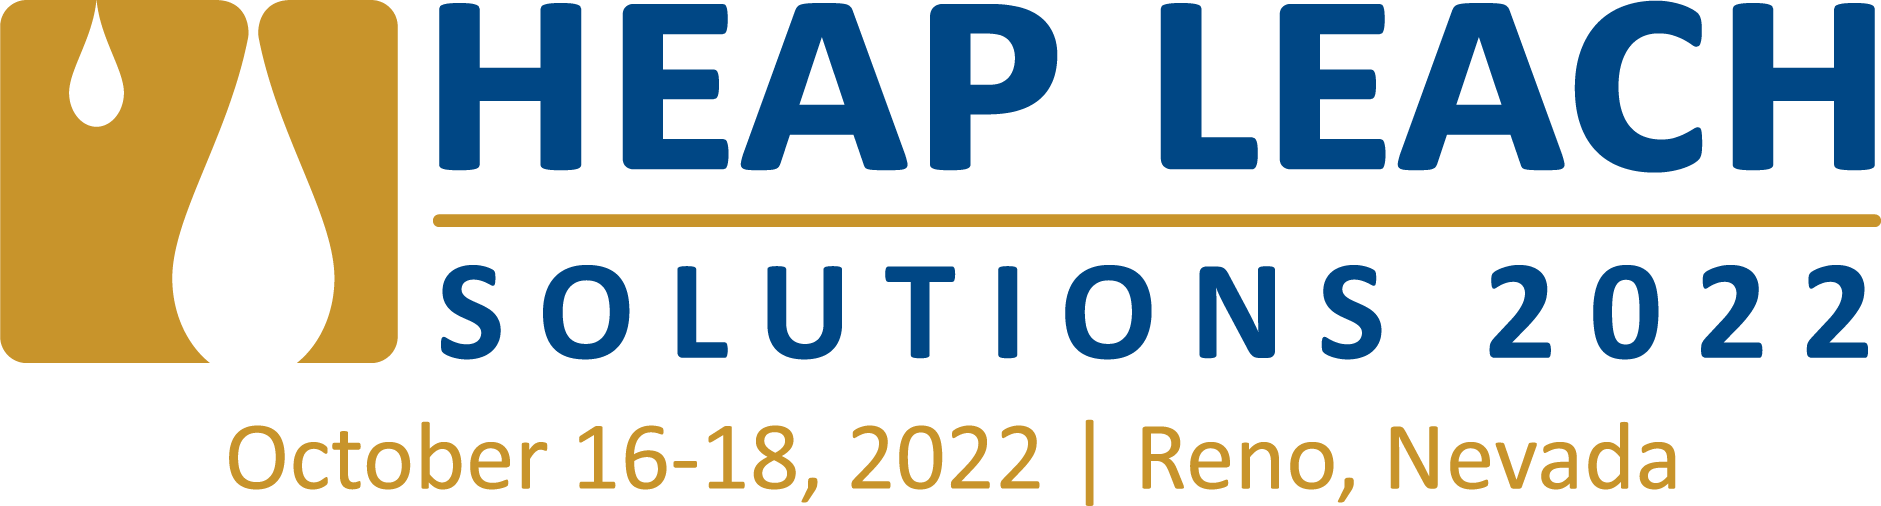 Heap Leach Solutions Conference